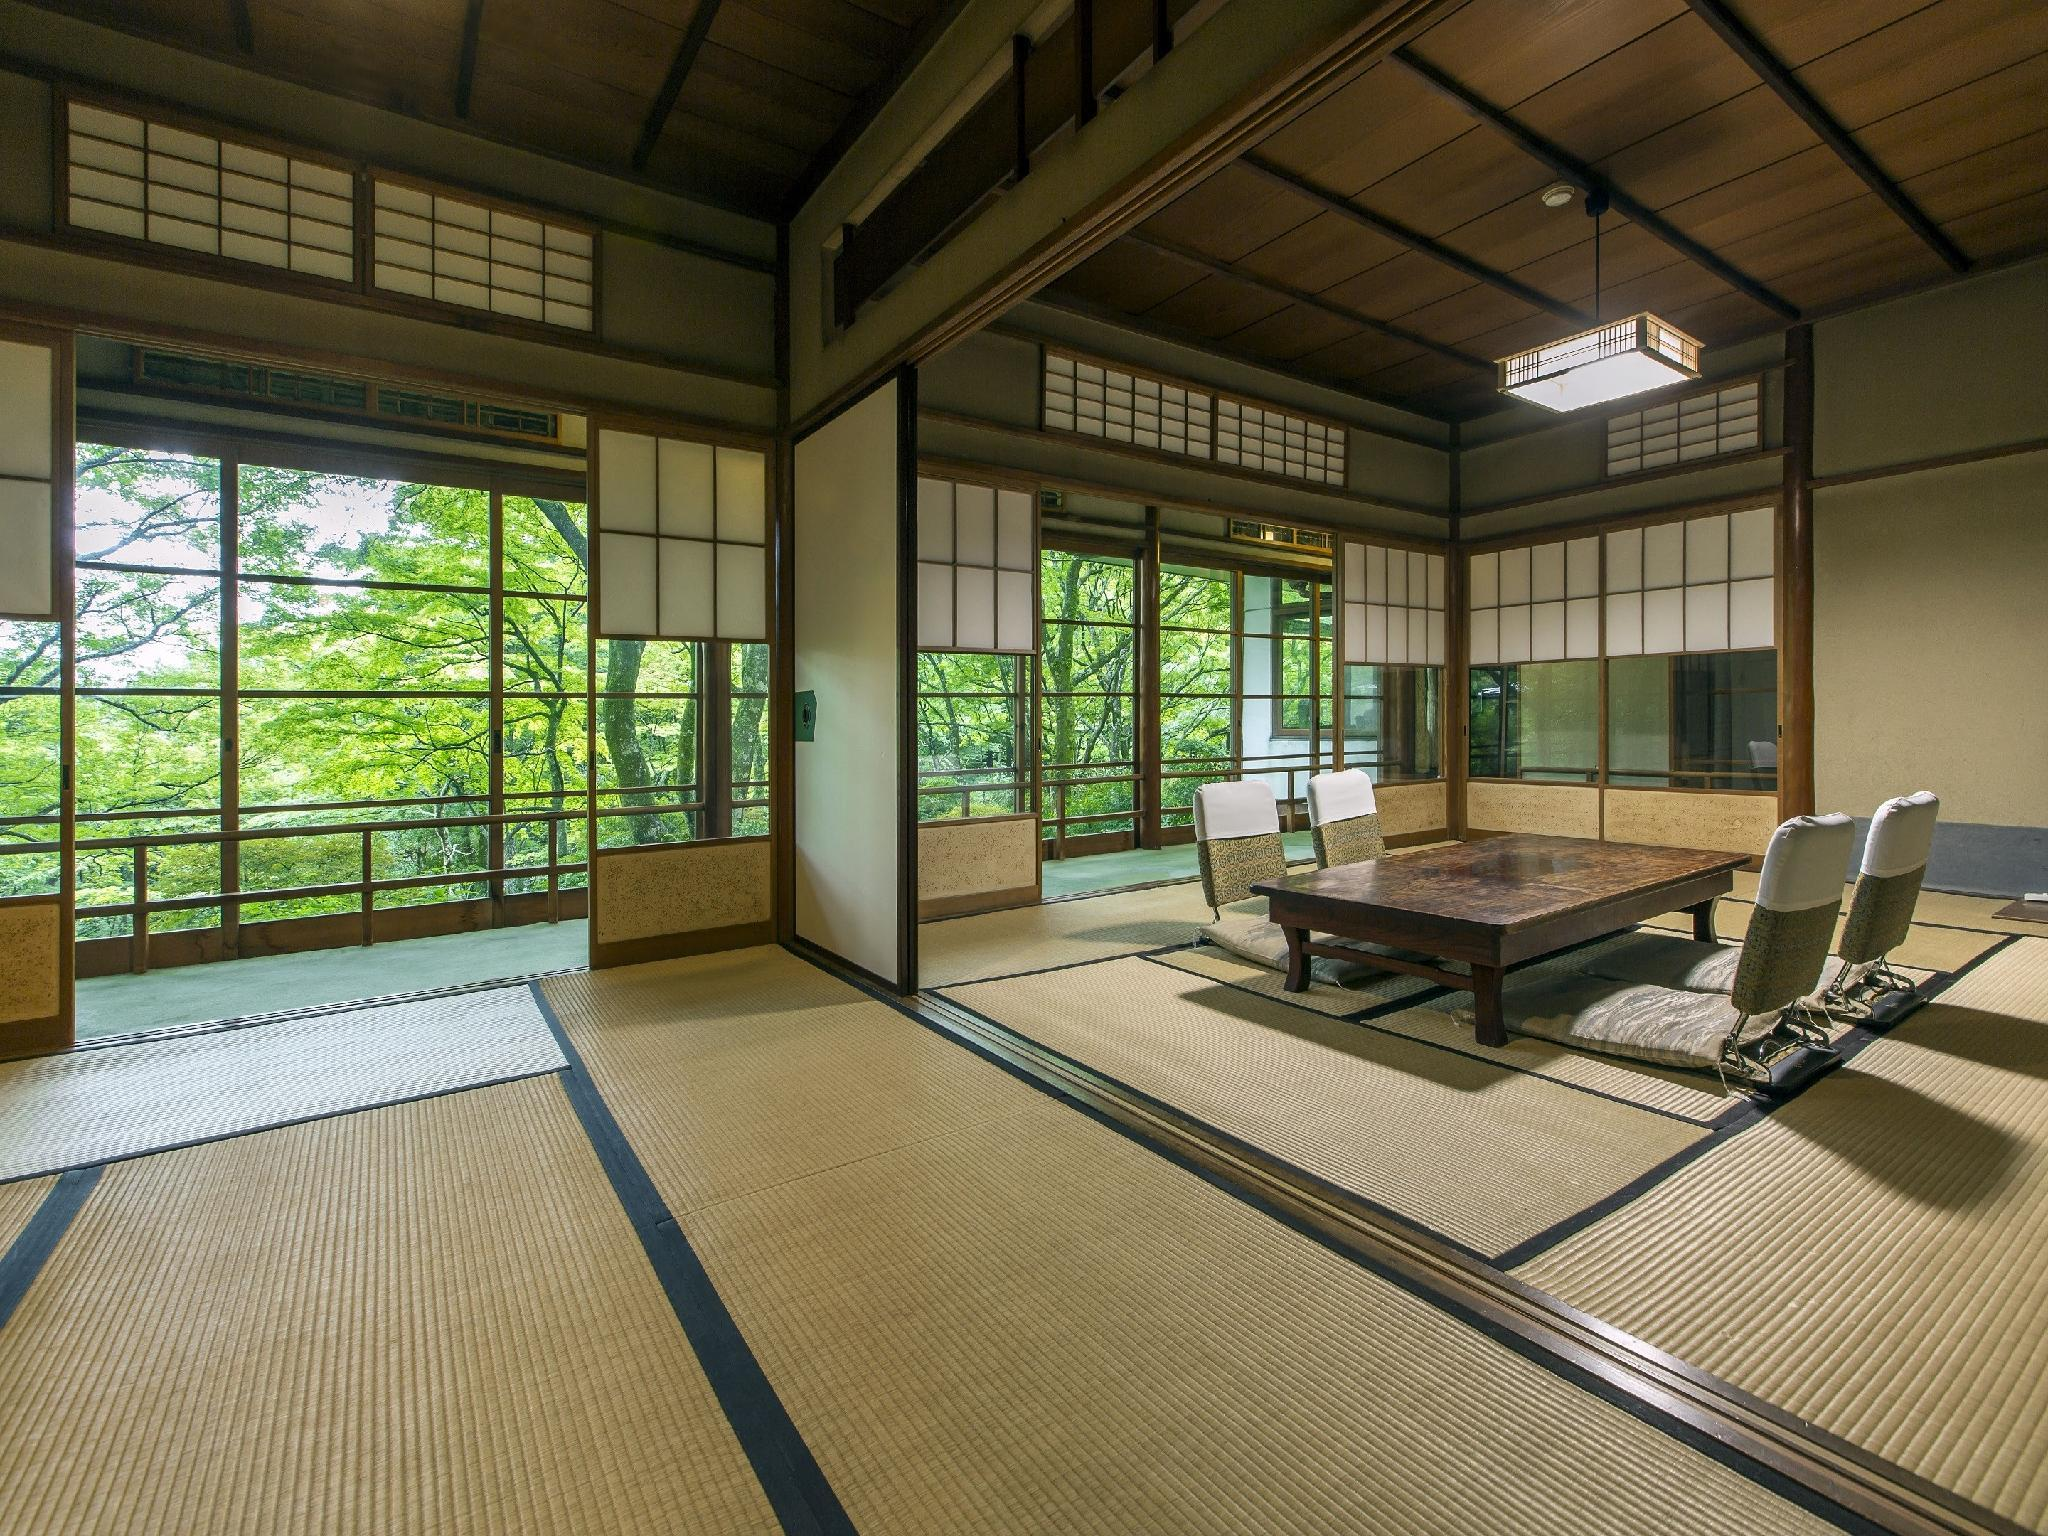 锦华亭・八集庵 独立贵宾室 (Detached Deluxe Japanese/Western-style Room with Indoor Hot Spring Bath (Kinkatei/Hashuan Type))